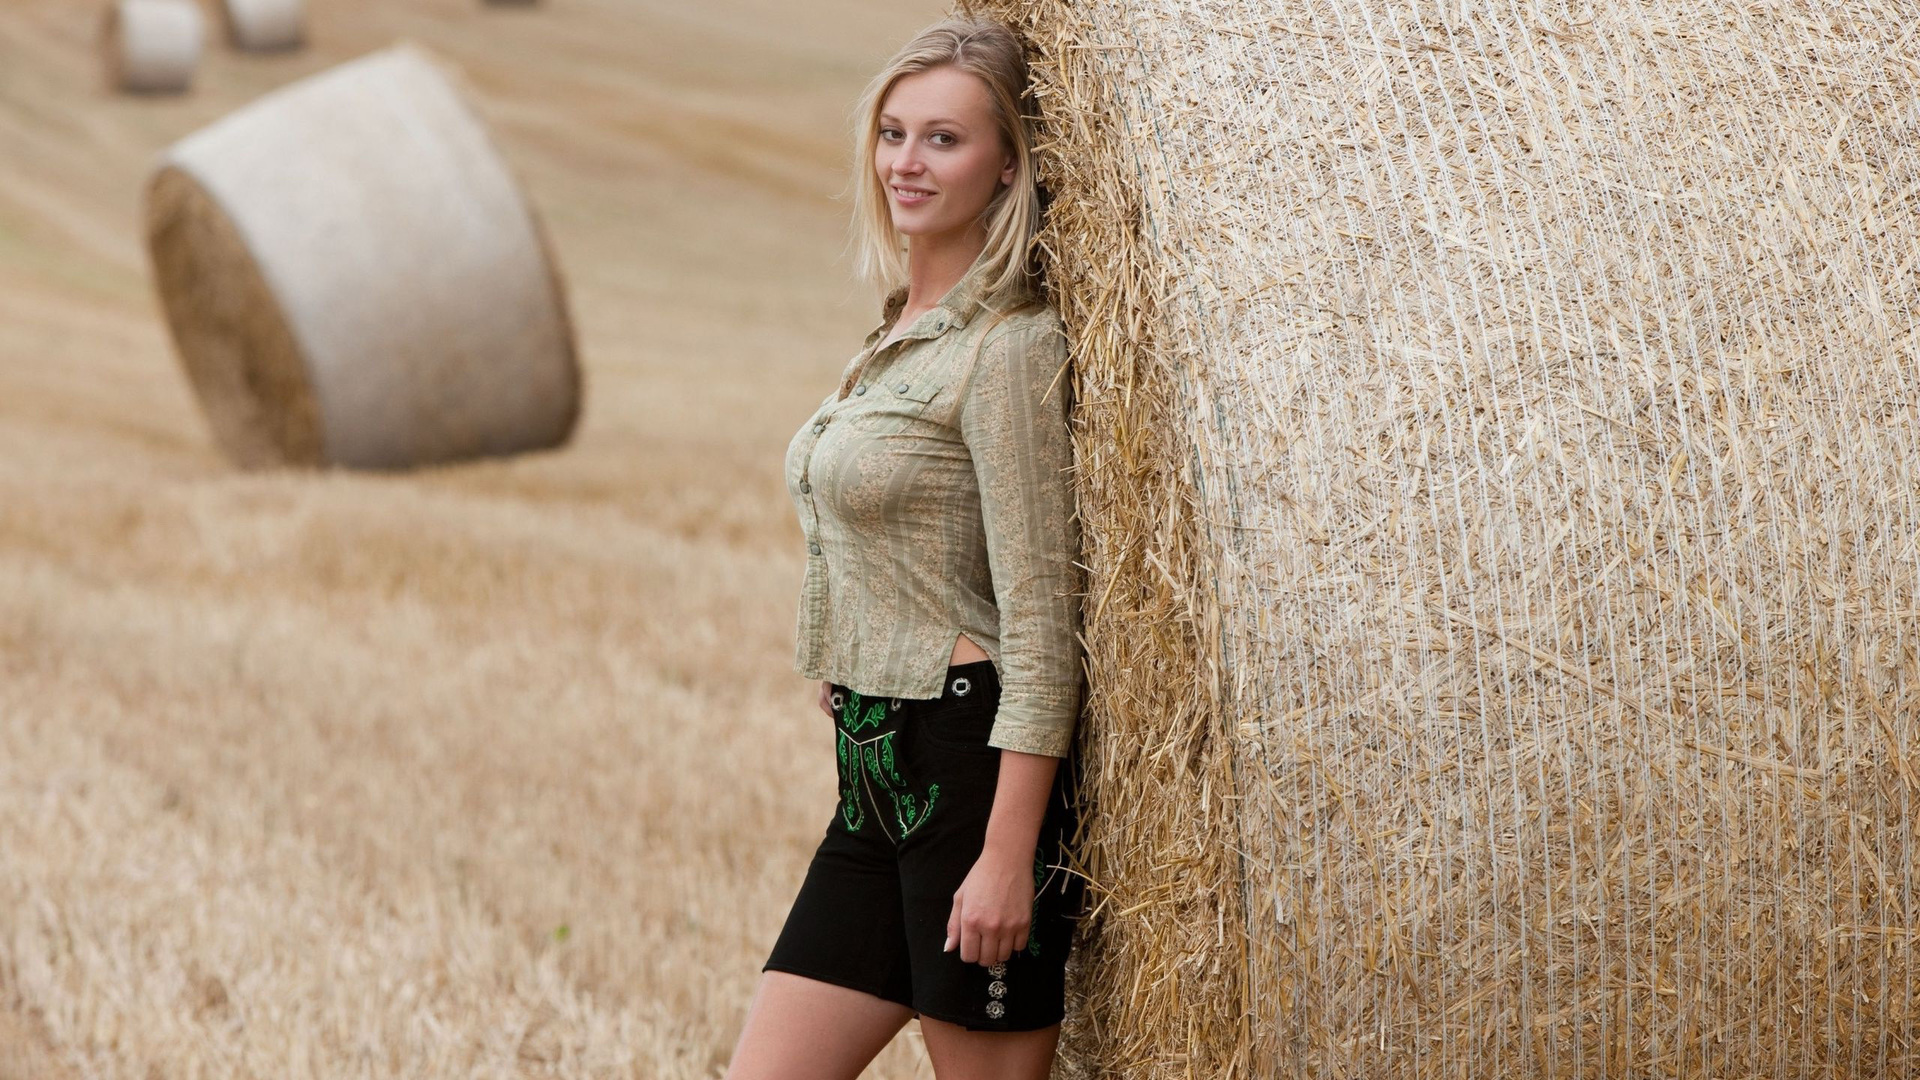 Girl With Hat Wallpapers Blonde Leaning On A Hay Bale Wallpaper Girl Wallpapers